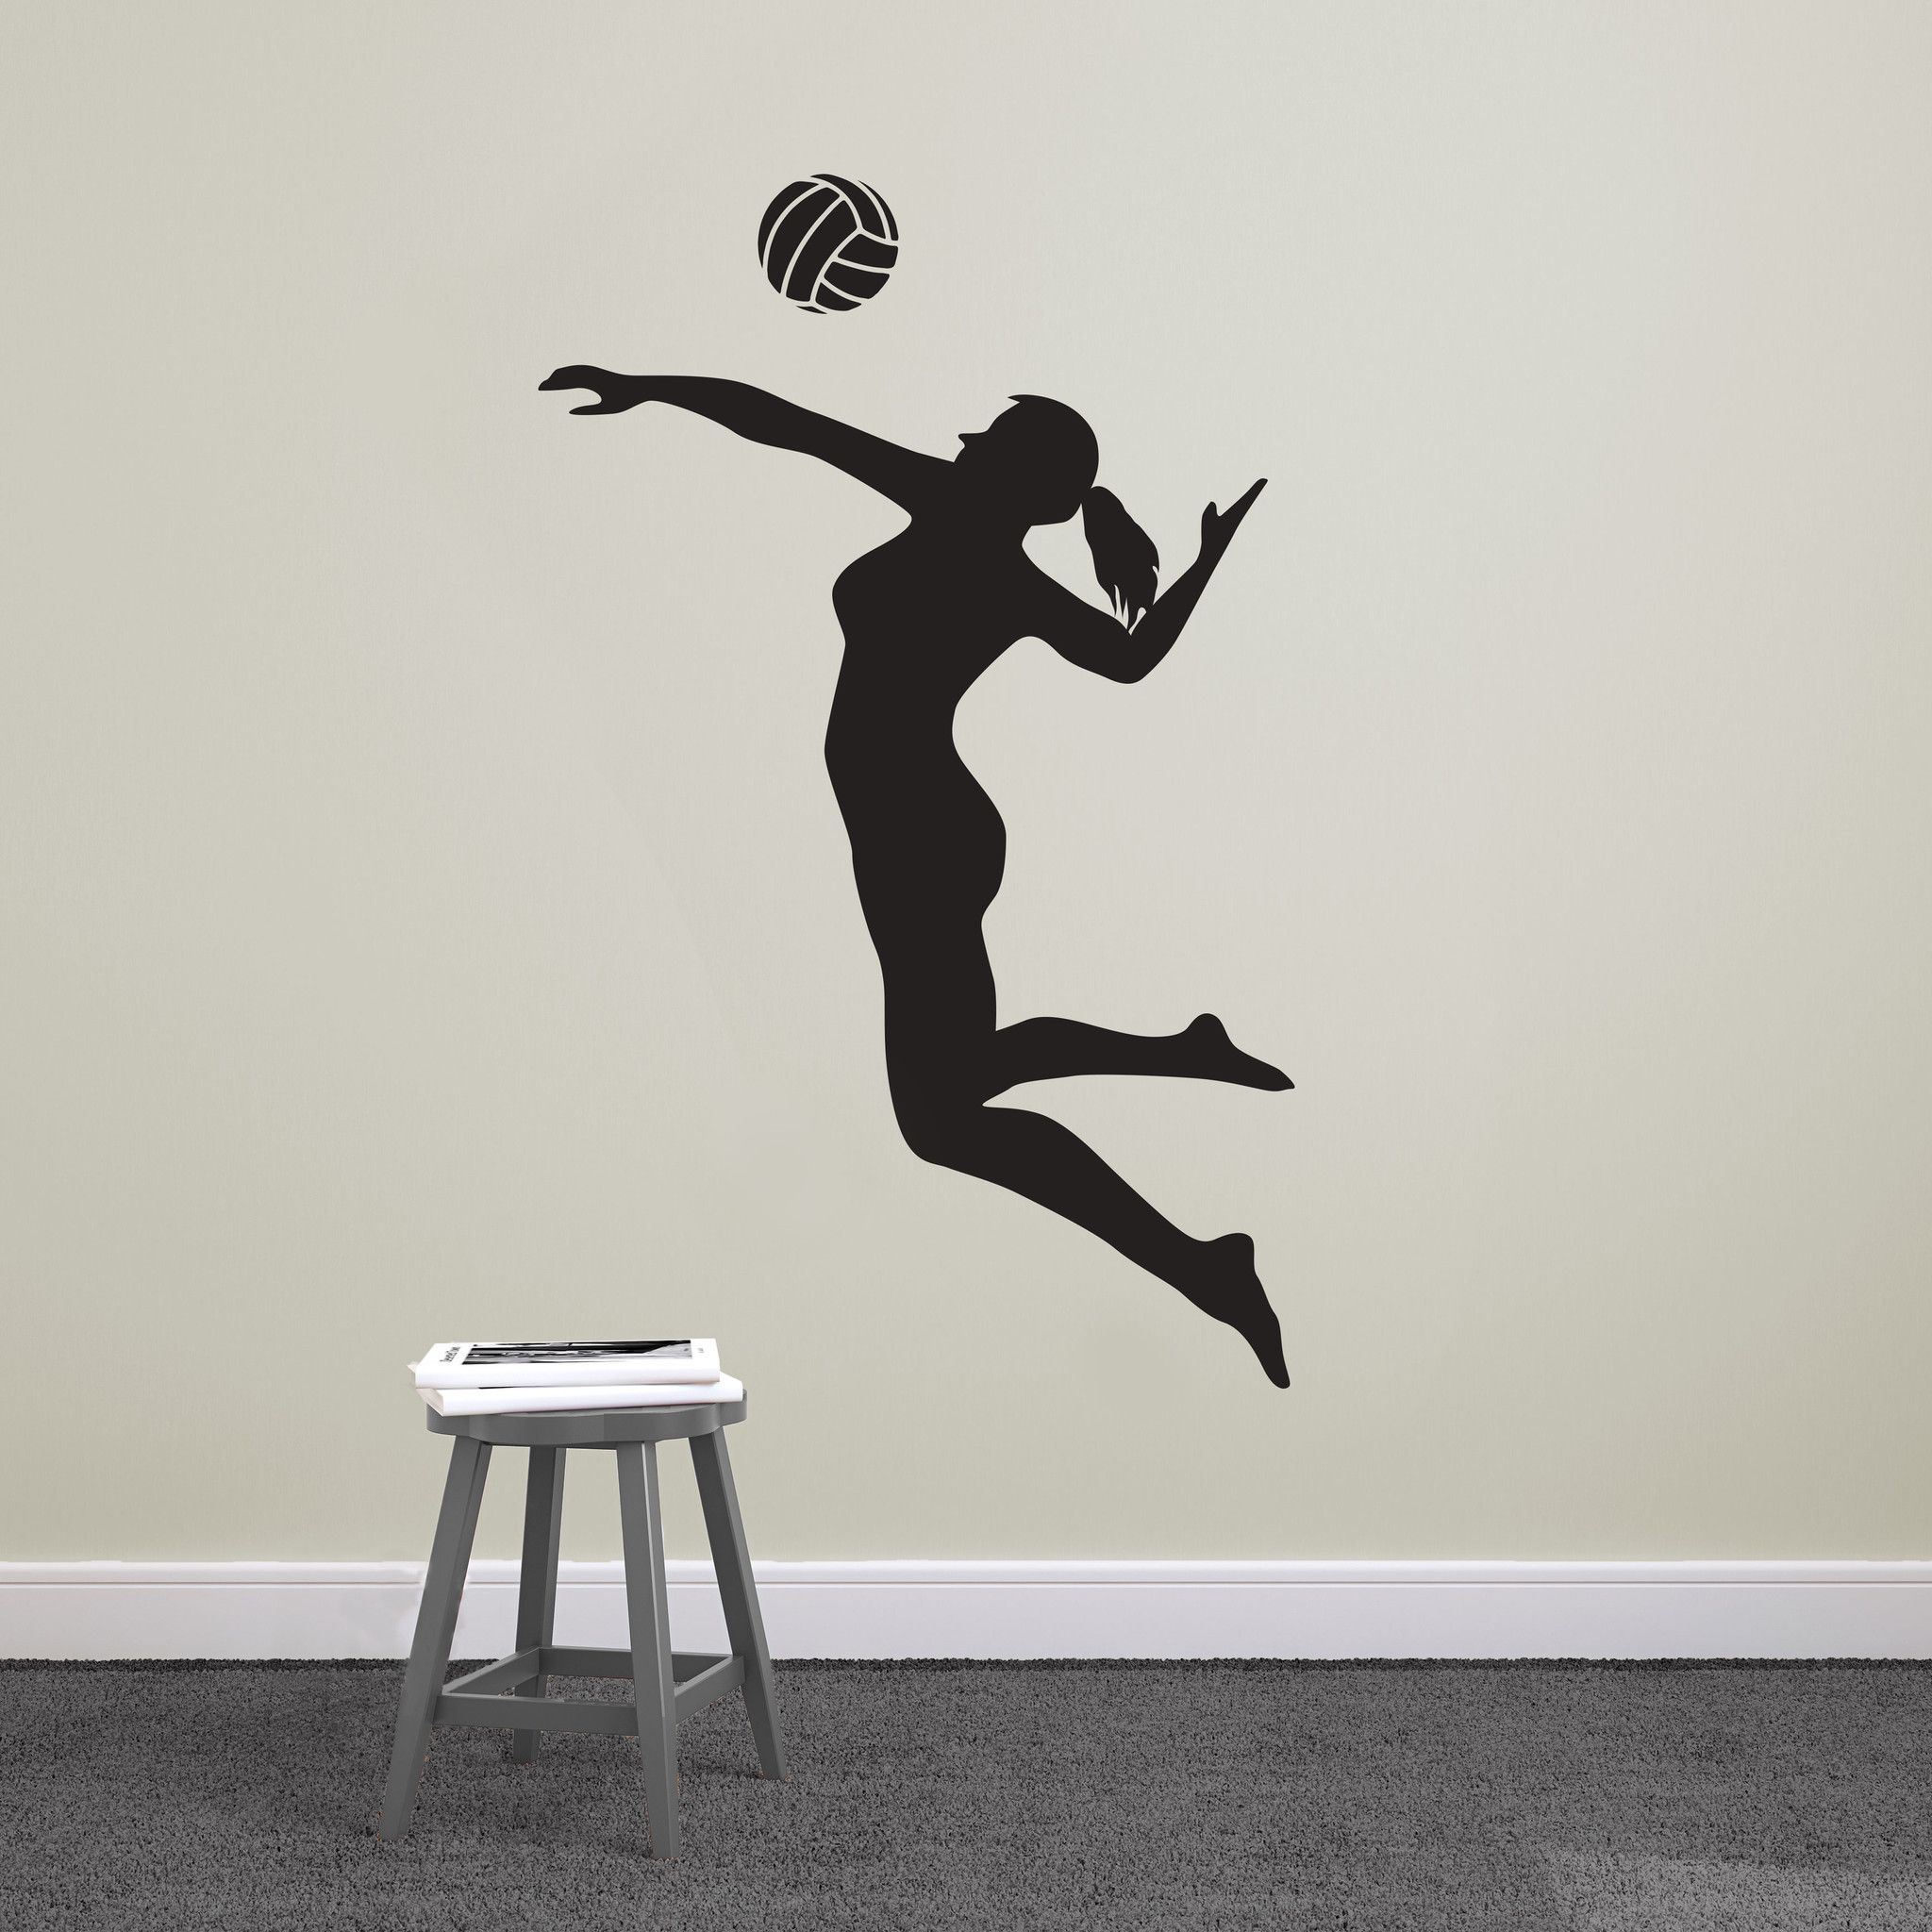 Volleyball Player Spiking Silhouette Sports Vinyl Wall Art Decal For Homes Kids Rooms Nurseries Preschools Kindergartens Elementary Schools Middle Schoo Dibujo De Voleibol Voleibol Fondo De Pantalla De Voleibol